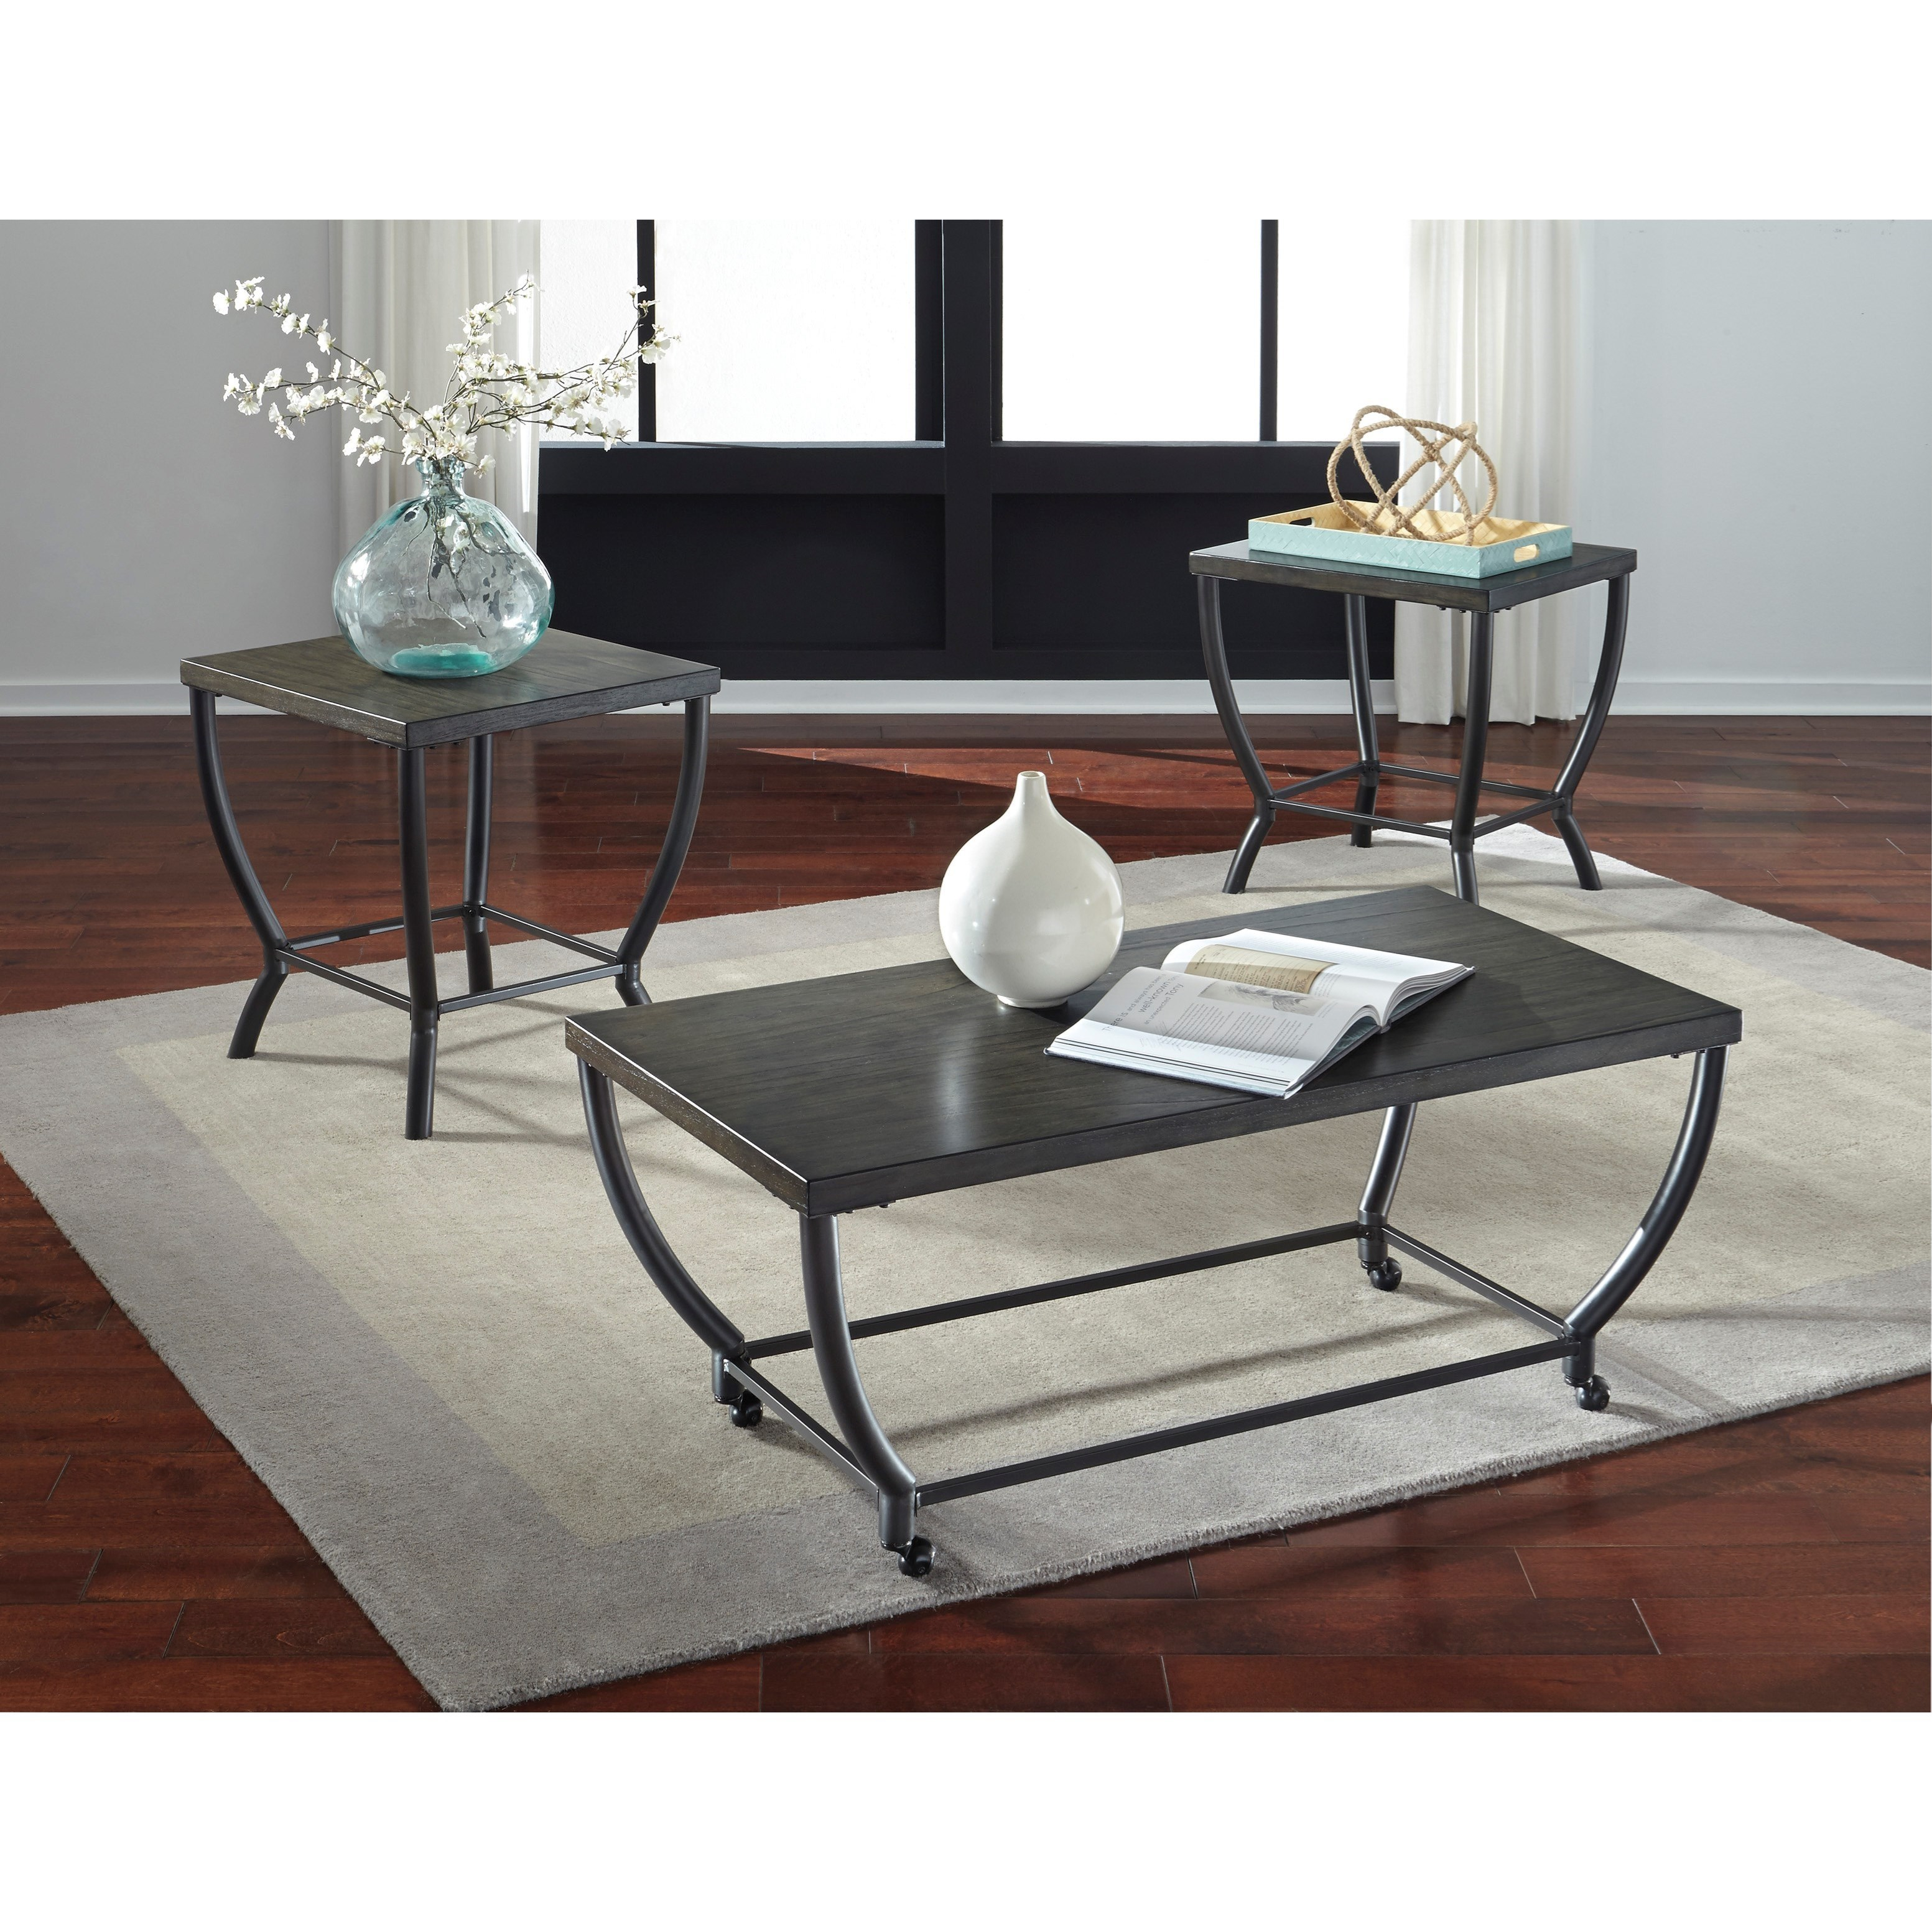 Signature Design By Ashley Champori T048 13 Contemporary Occasional Table Set Becker Furniture